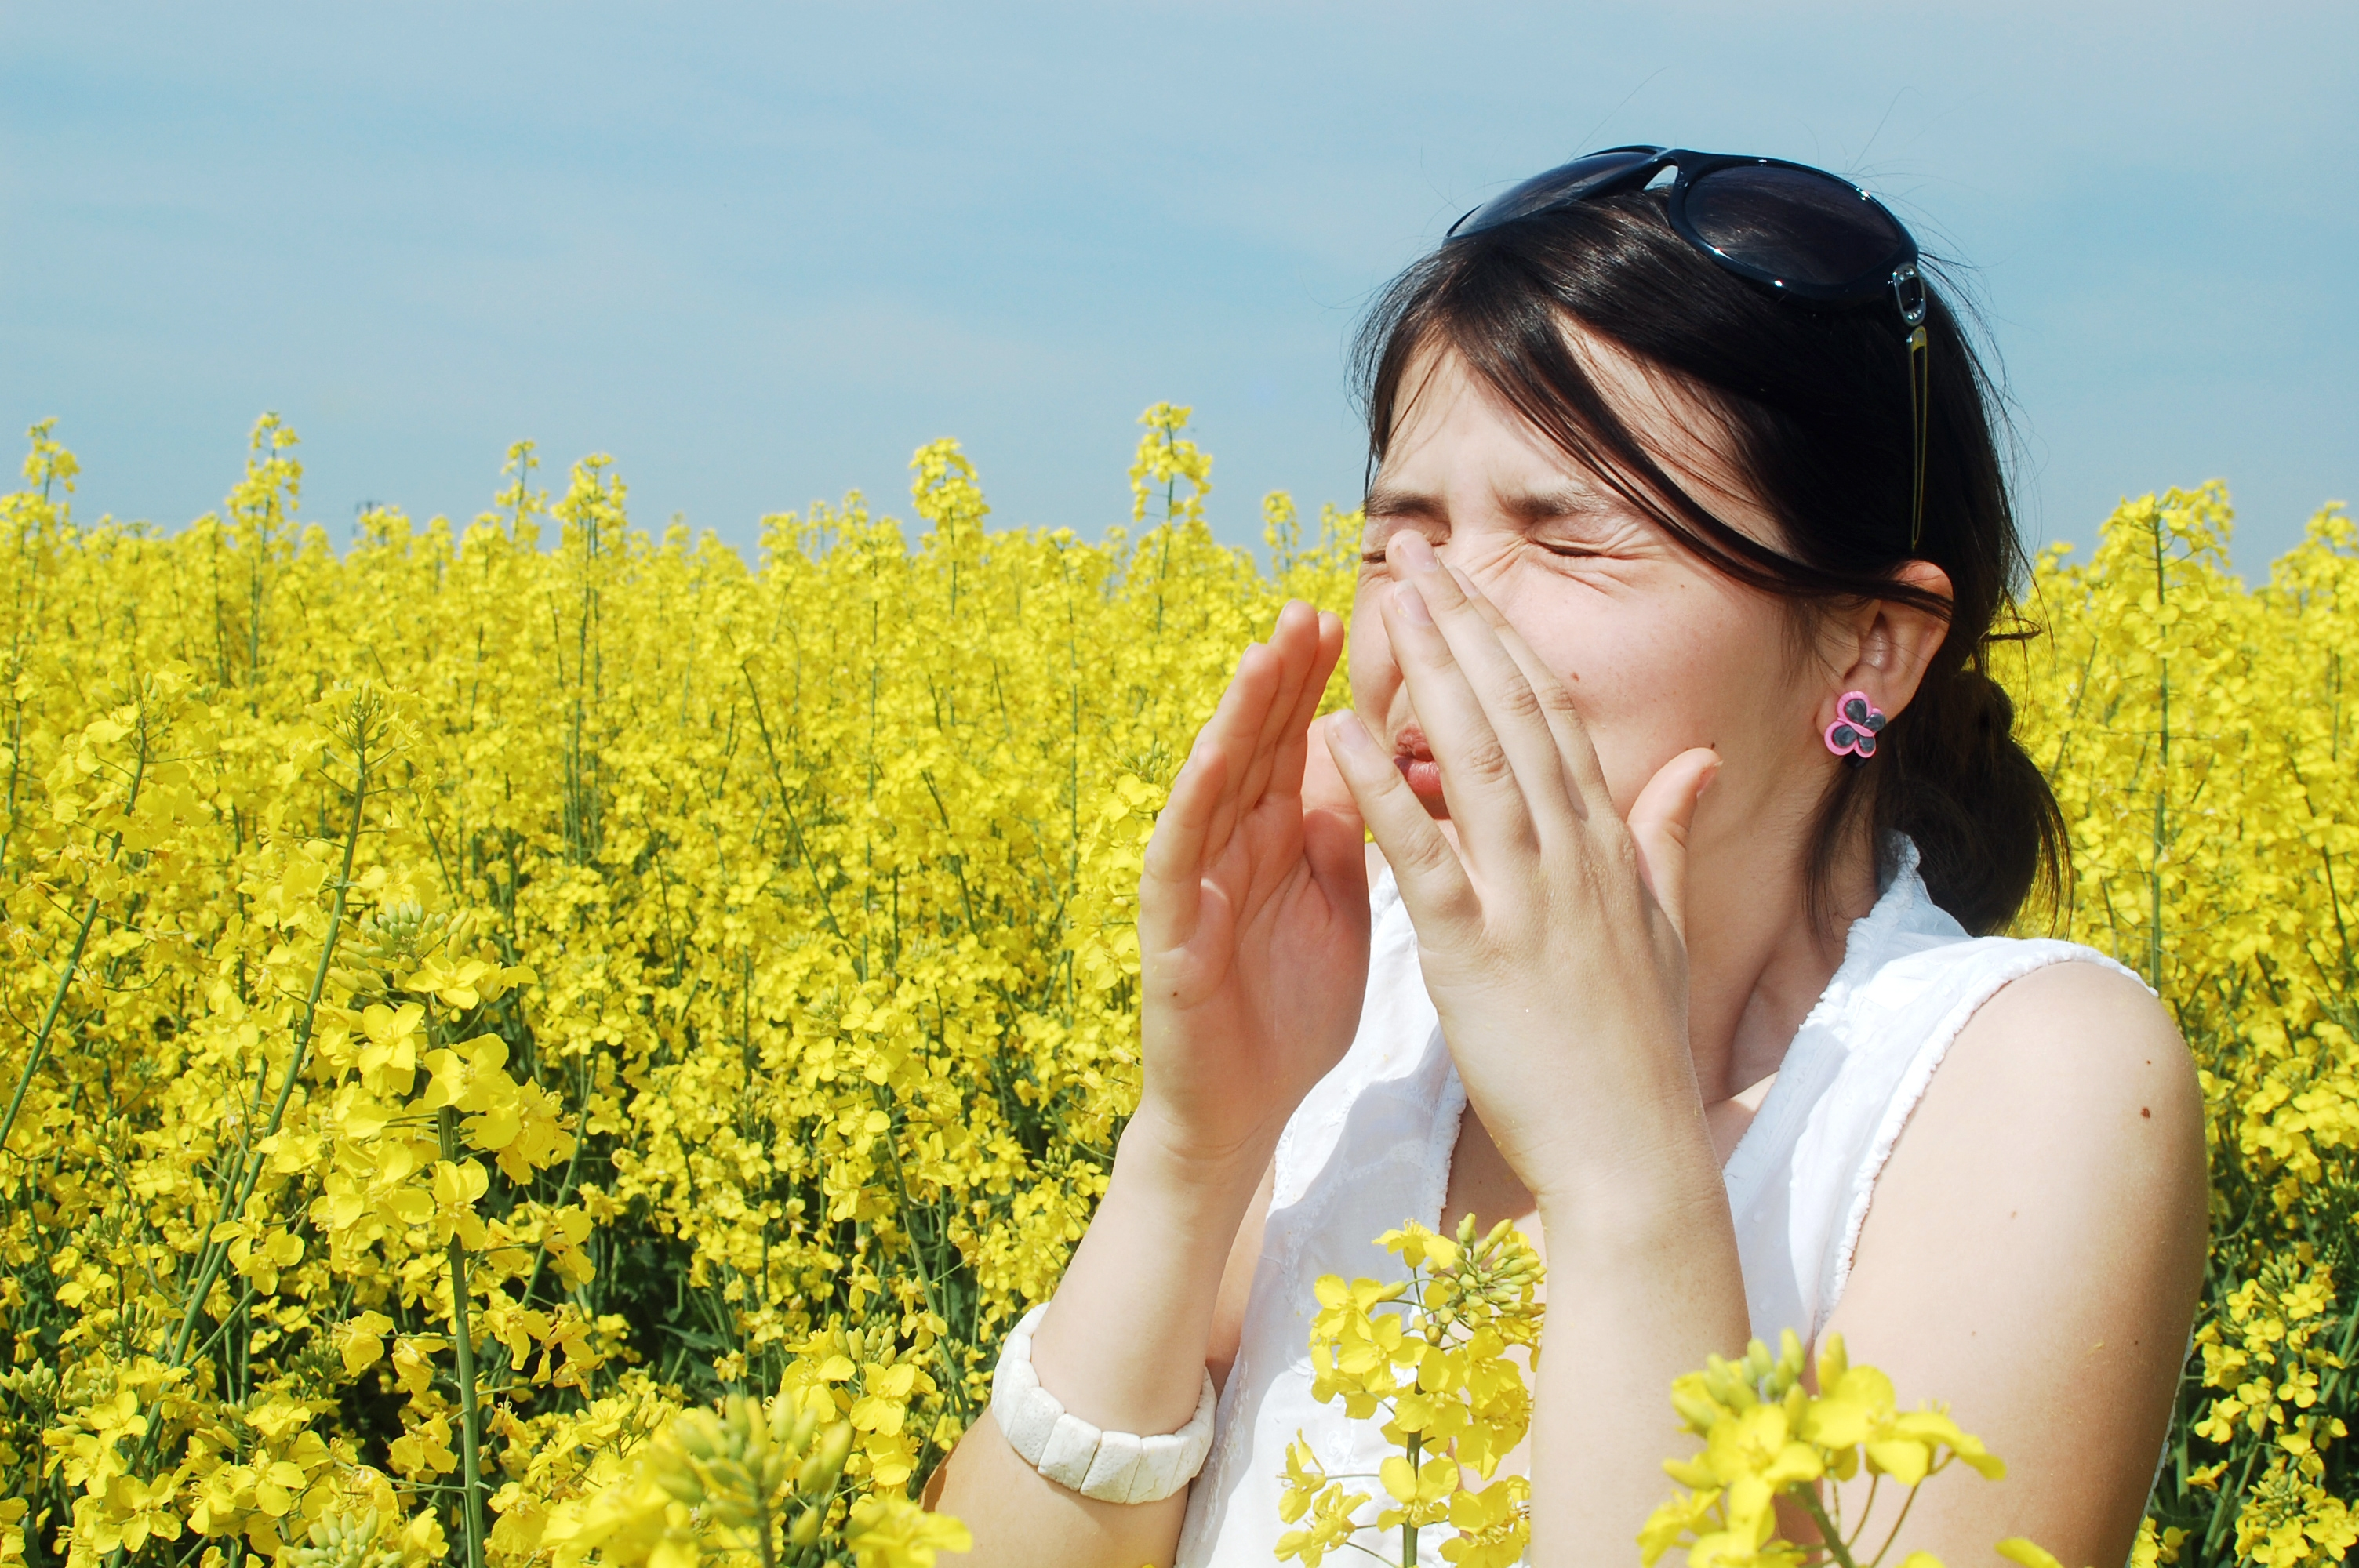 4-steps-to-natural-allergy-relief-seasonal-allergies.jpg